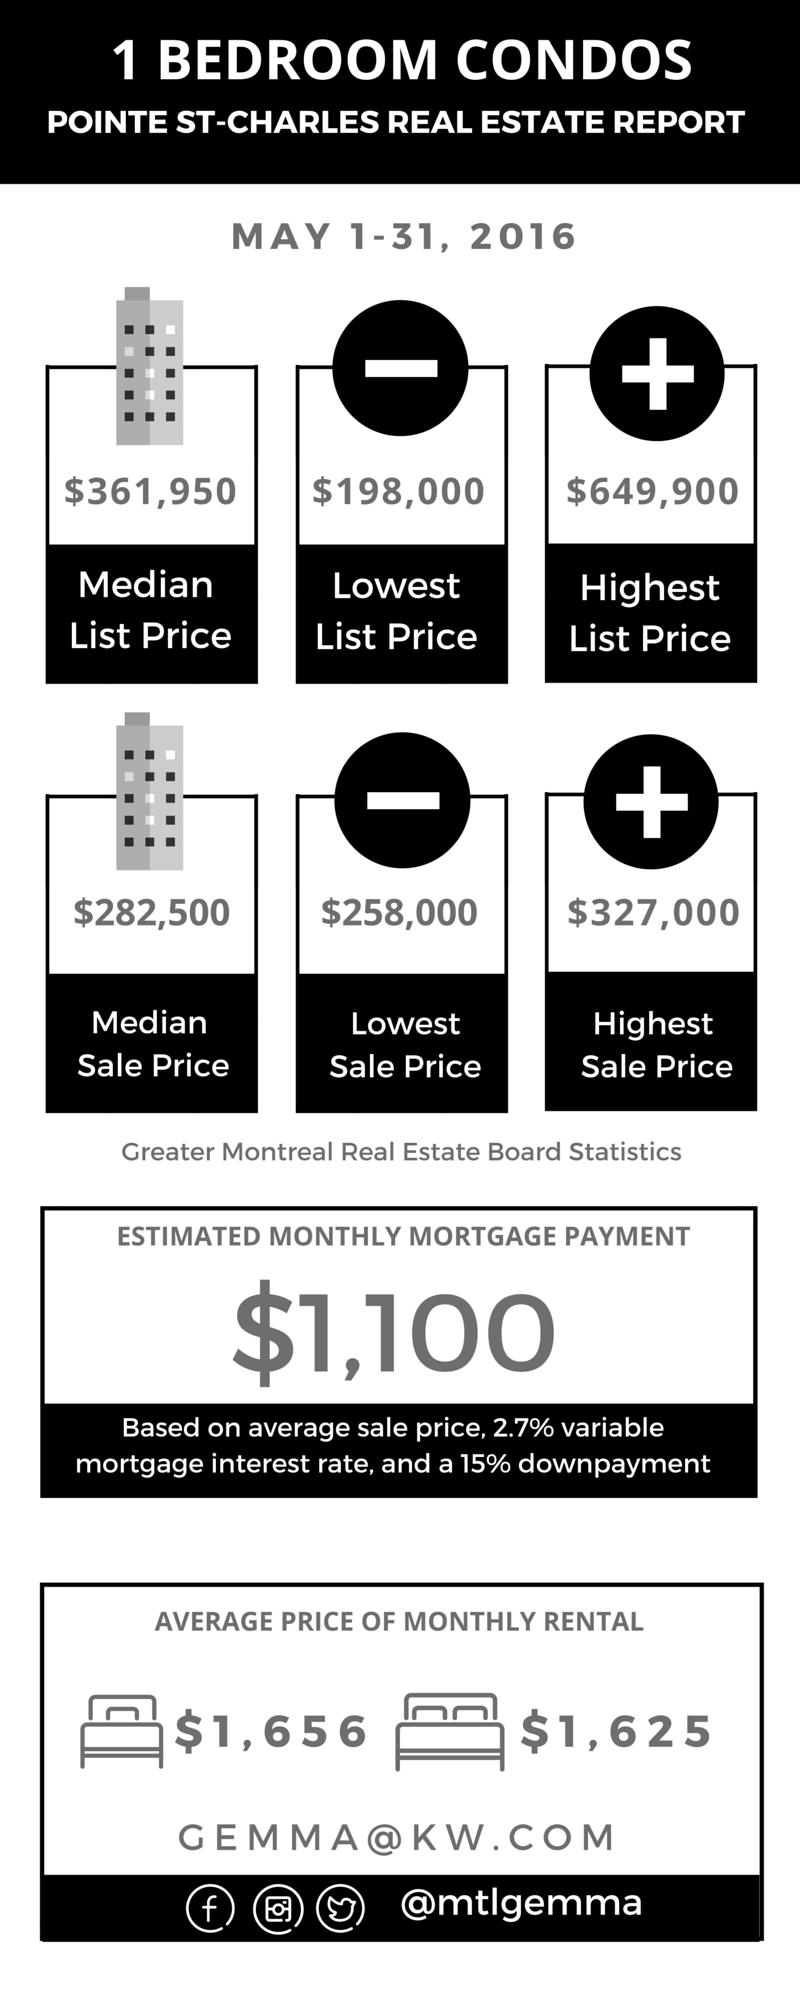 Pointe St-Charles Real Estate Report May 2016 02